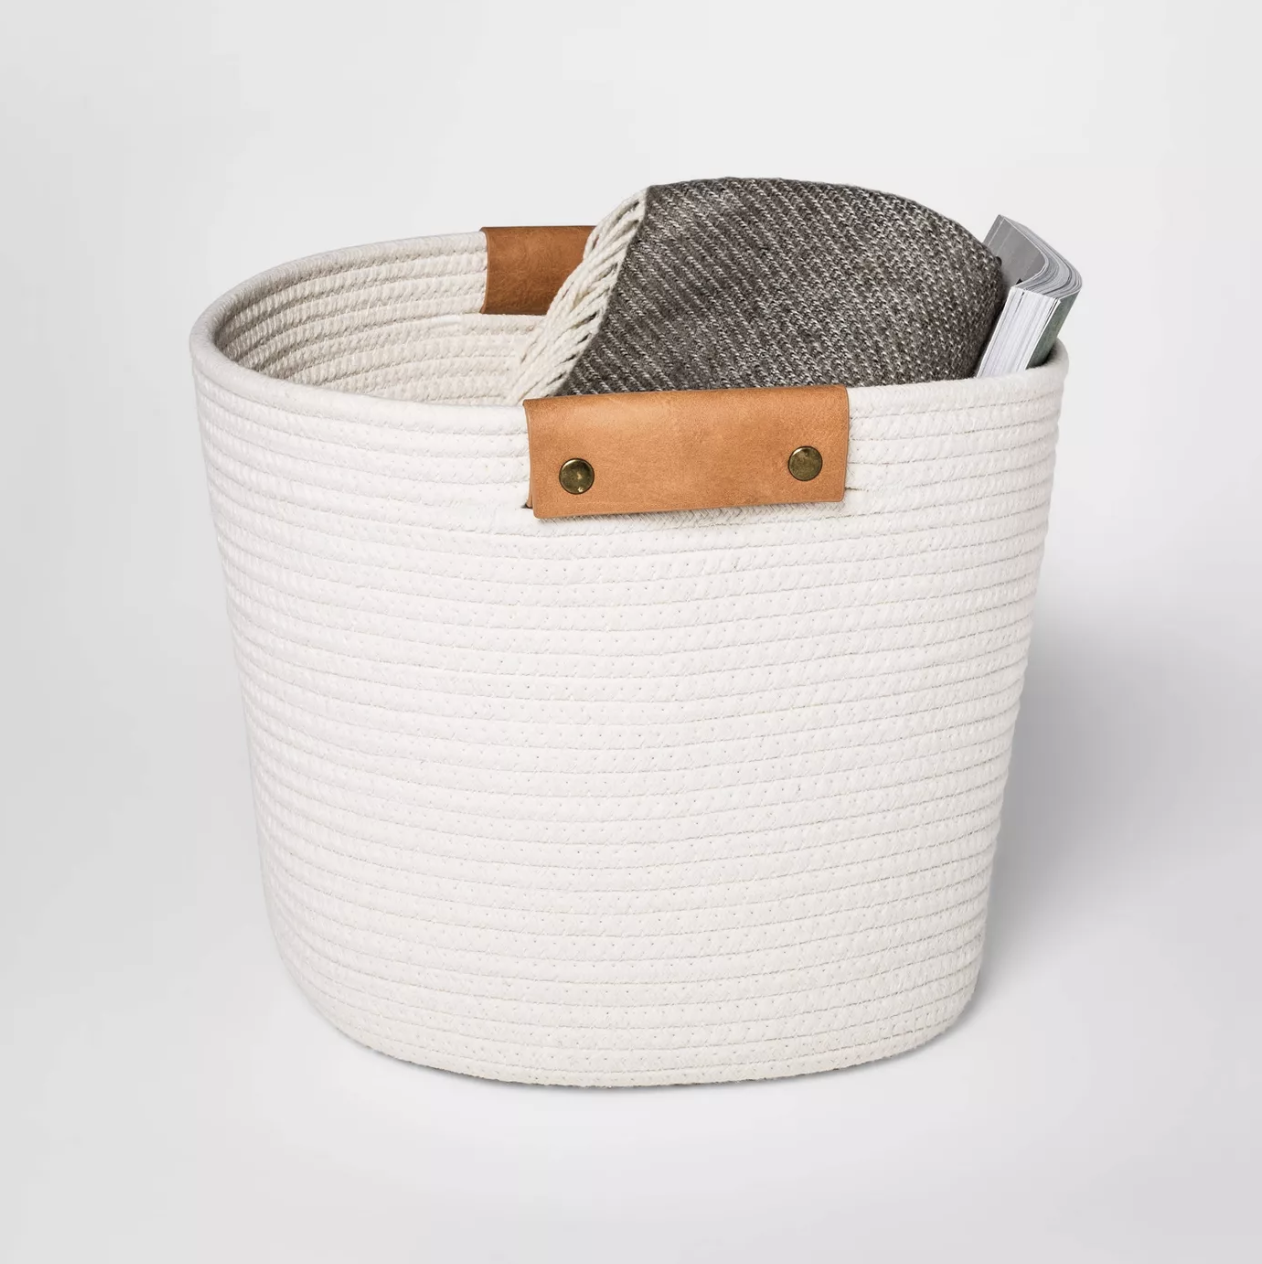 white woven basket with brown faux leather accents